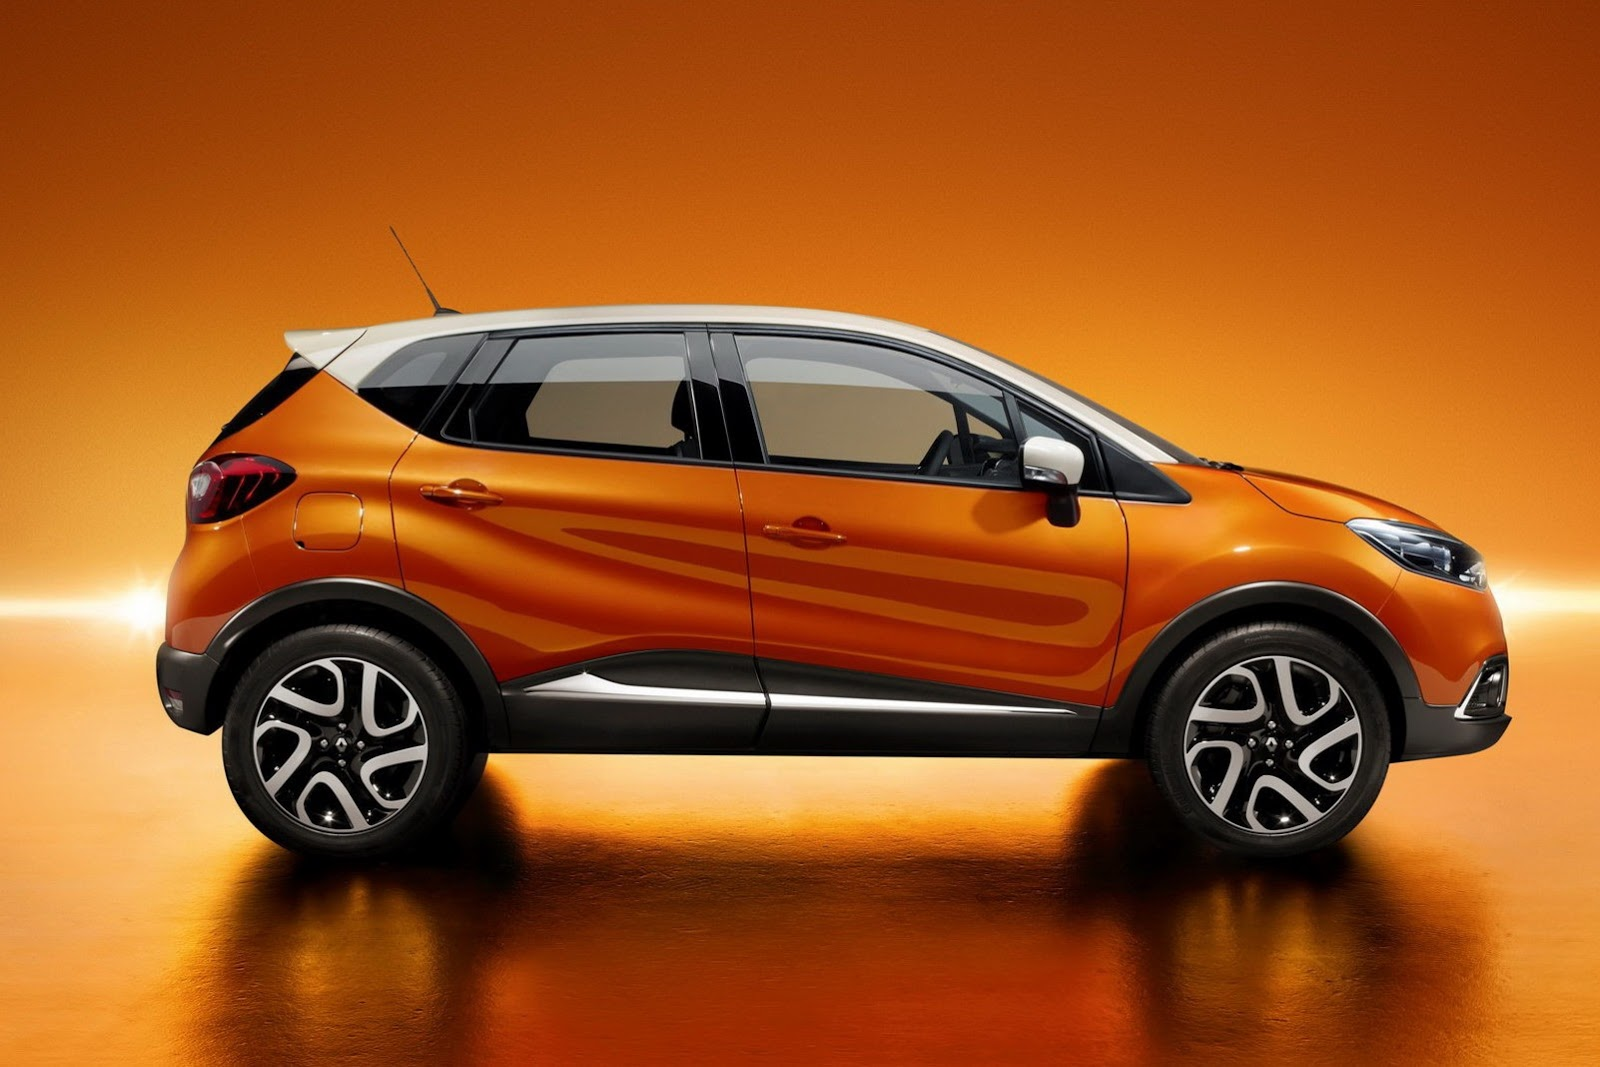 new renault captur puts a crossover twist to the clio platform owner manual pdf. Black Bedroom Furniture Sets. Home Design Ideas